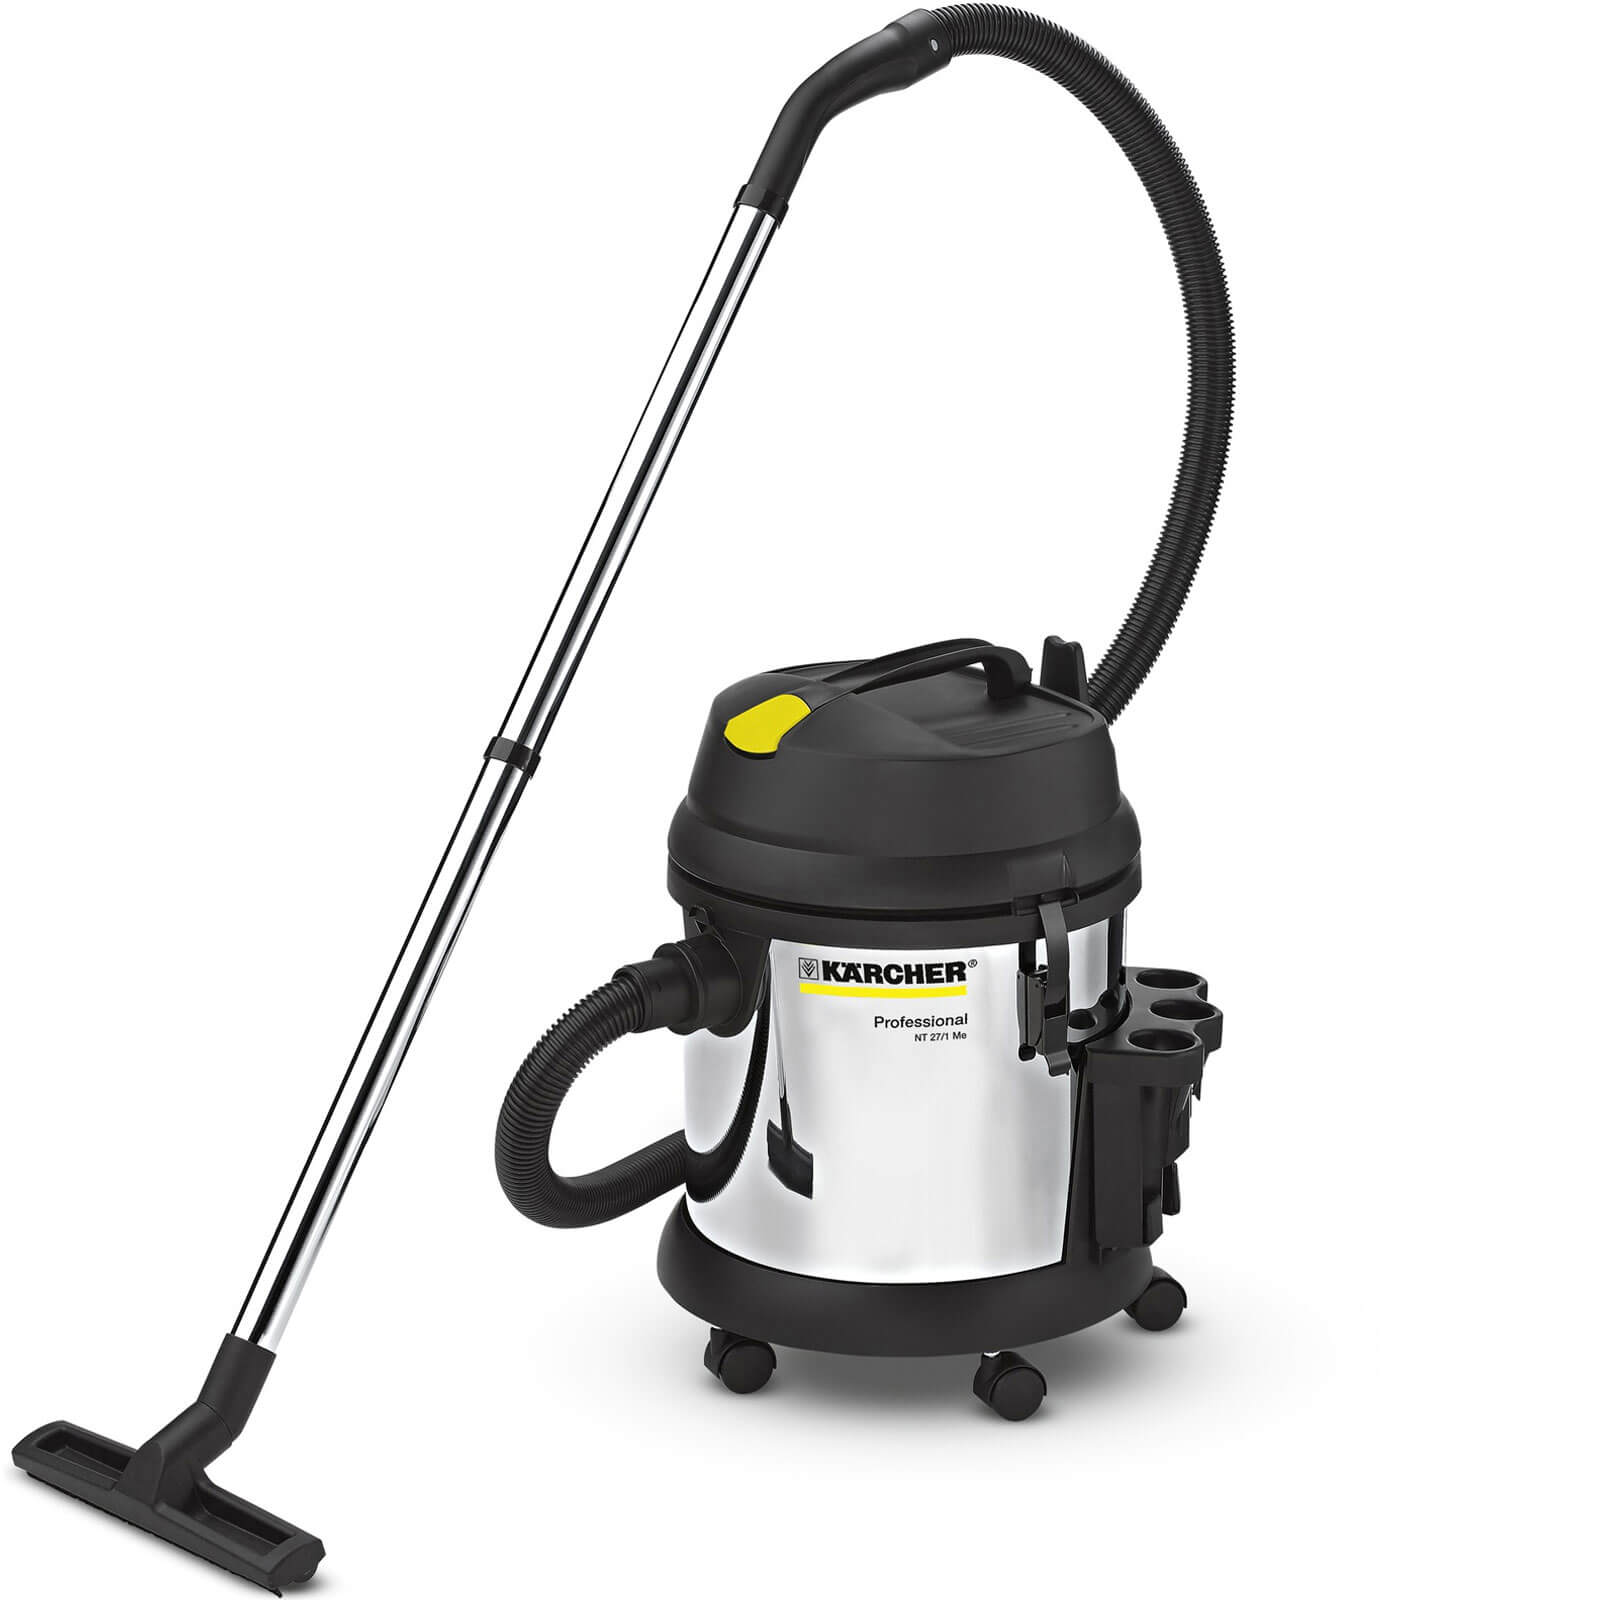 Karcher NT 271 ME Professional Metal Wet & Dry Vacuum Cleaner 240v